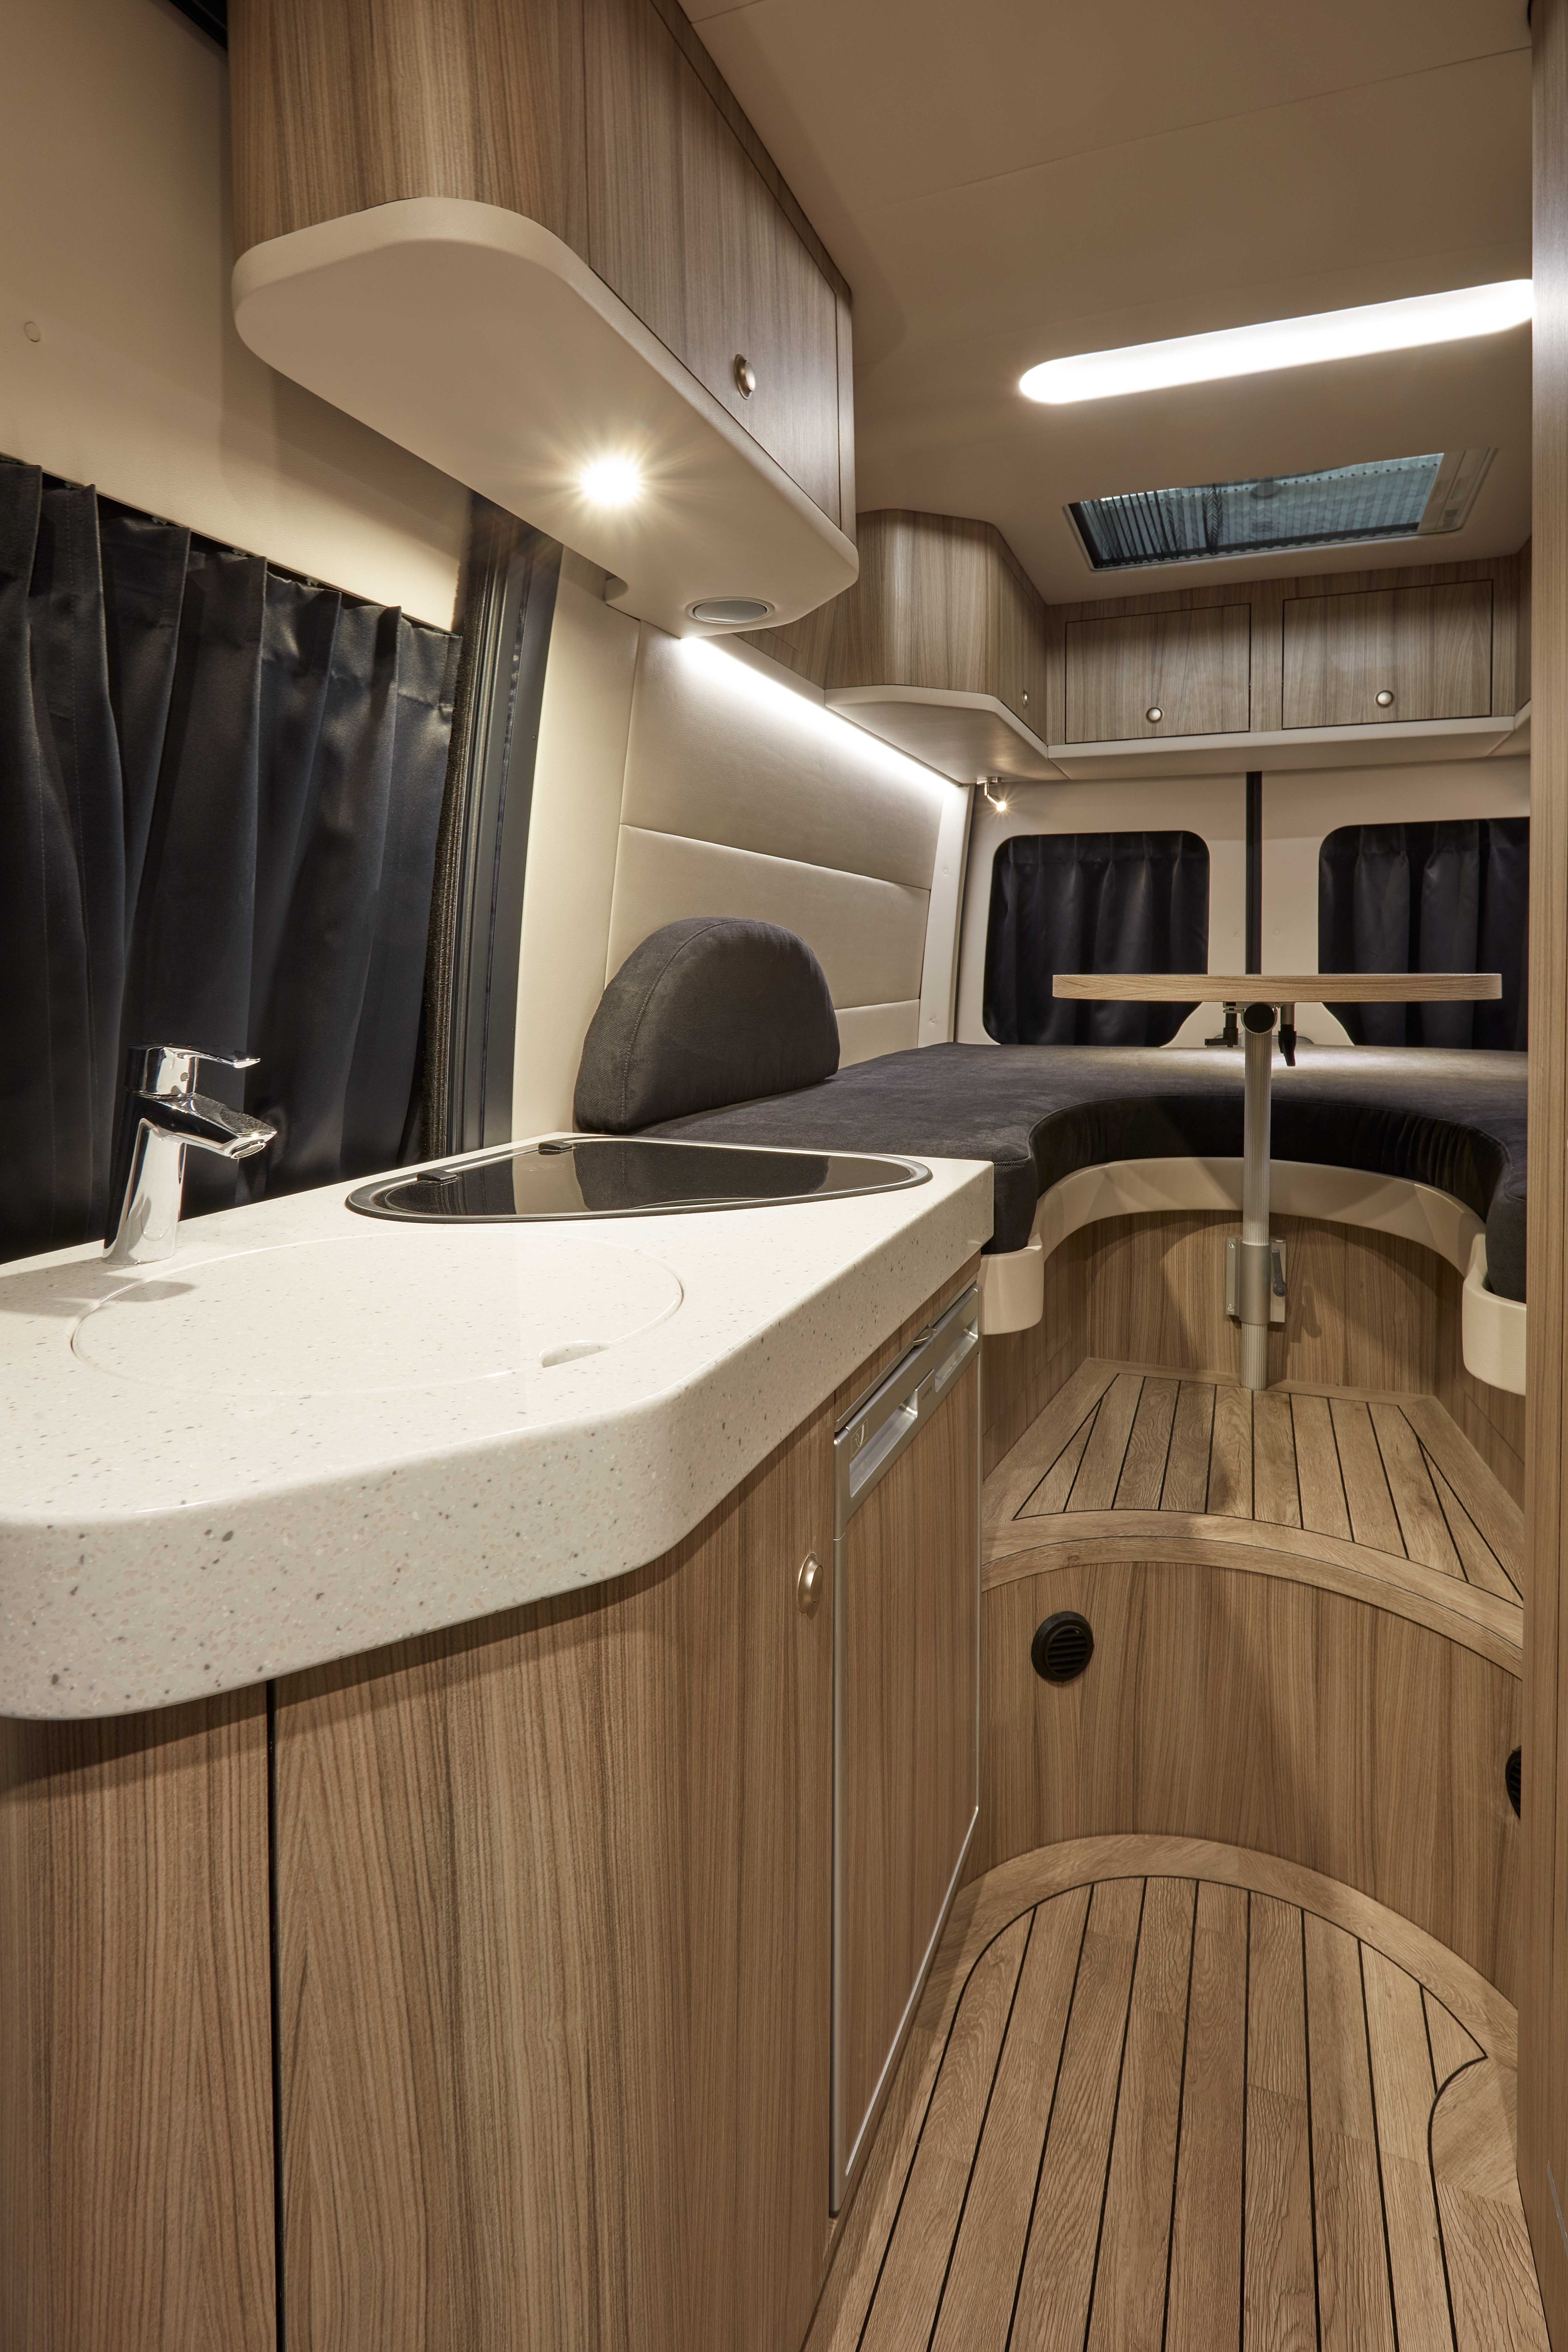 Interieur Buscamper Innova Roadtrip, Interior, Mercedes Sprinter, Modern